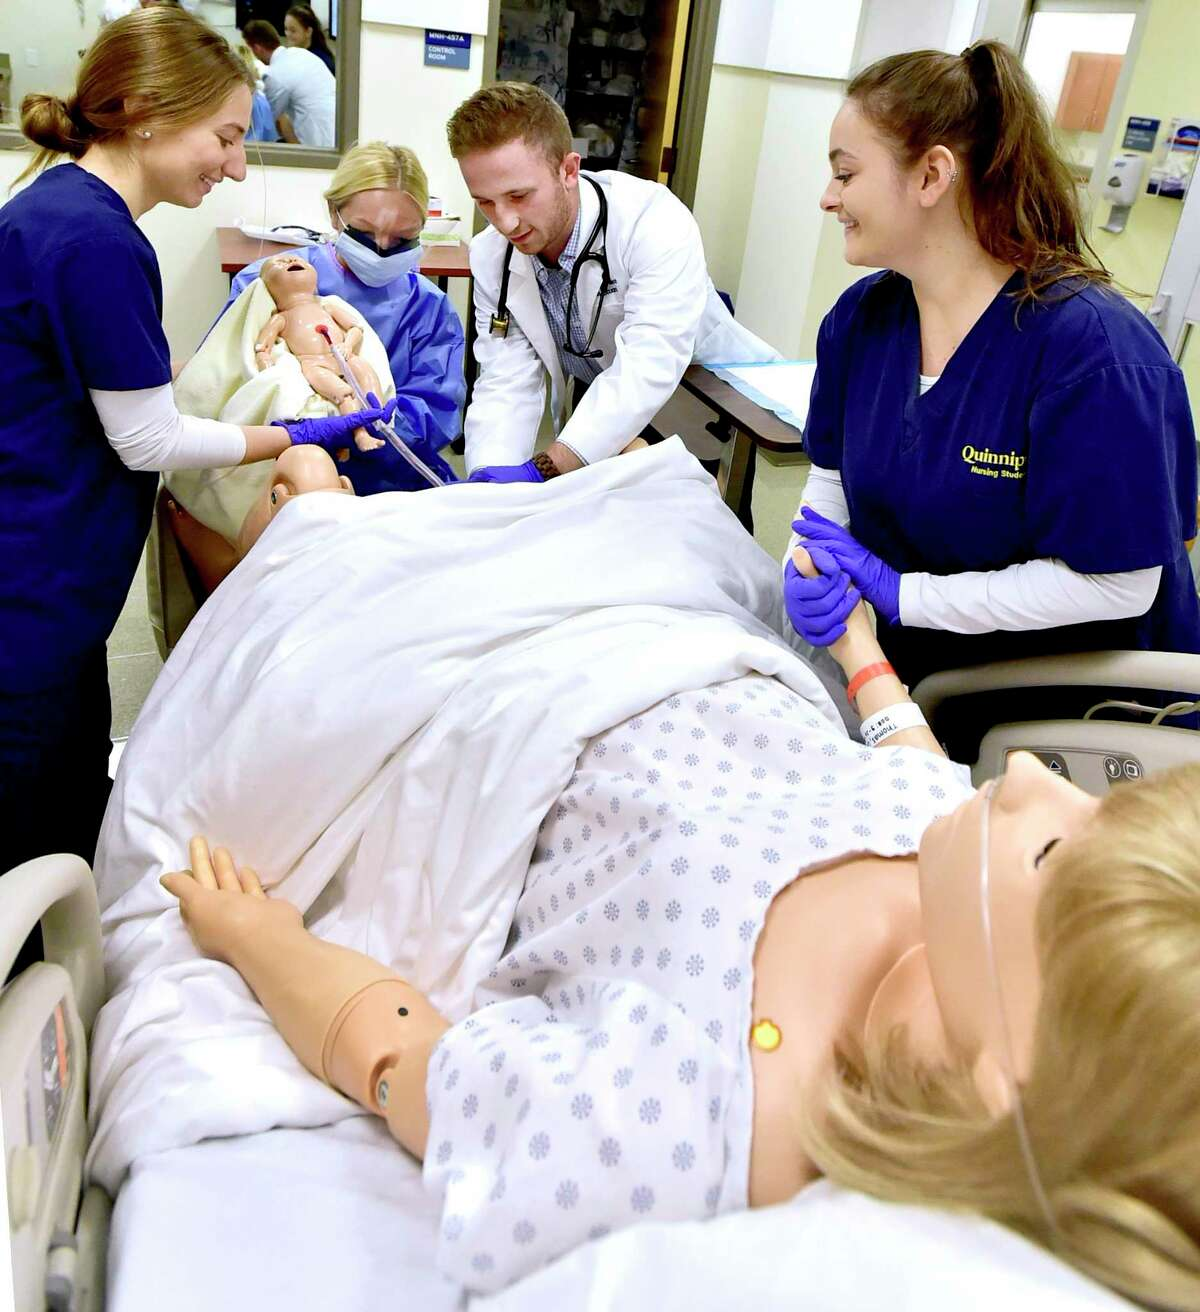 """During inter-professional training, Quinnipiac University physician assistant graduate students Connor Moore, third from left, and Ashley Ryan, second from left, and QU nursing students Kiya Ruggiero, right, and Alicia Ricci, left, deliver a simulated baby using a Guamard Scientific """"Noelle"""" birthing mannikin as Quinnipiac University undergraduate nursing students and physician assistant graduate students work with live """"standardized patient"""" actors and several simulation manikins at the Quinnipiac University Center for Medicine, Nursing and Health Sciences simulation lab on the North Haven Campus. The manikins include a life-size wirelessly controlled man known as the SimMan 3G, a realistically proportioned 25-week preterm infant manikin known as Premature Anne, and a Pediatric Hal, touted as the world's most advanced pediatric patient simulator and the first capable of simulating lifelike emotions through dynamic facial expressions, movement and speech. The live """"standardized patient"""" actors are trained to act like patients or patients' family."""